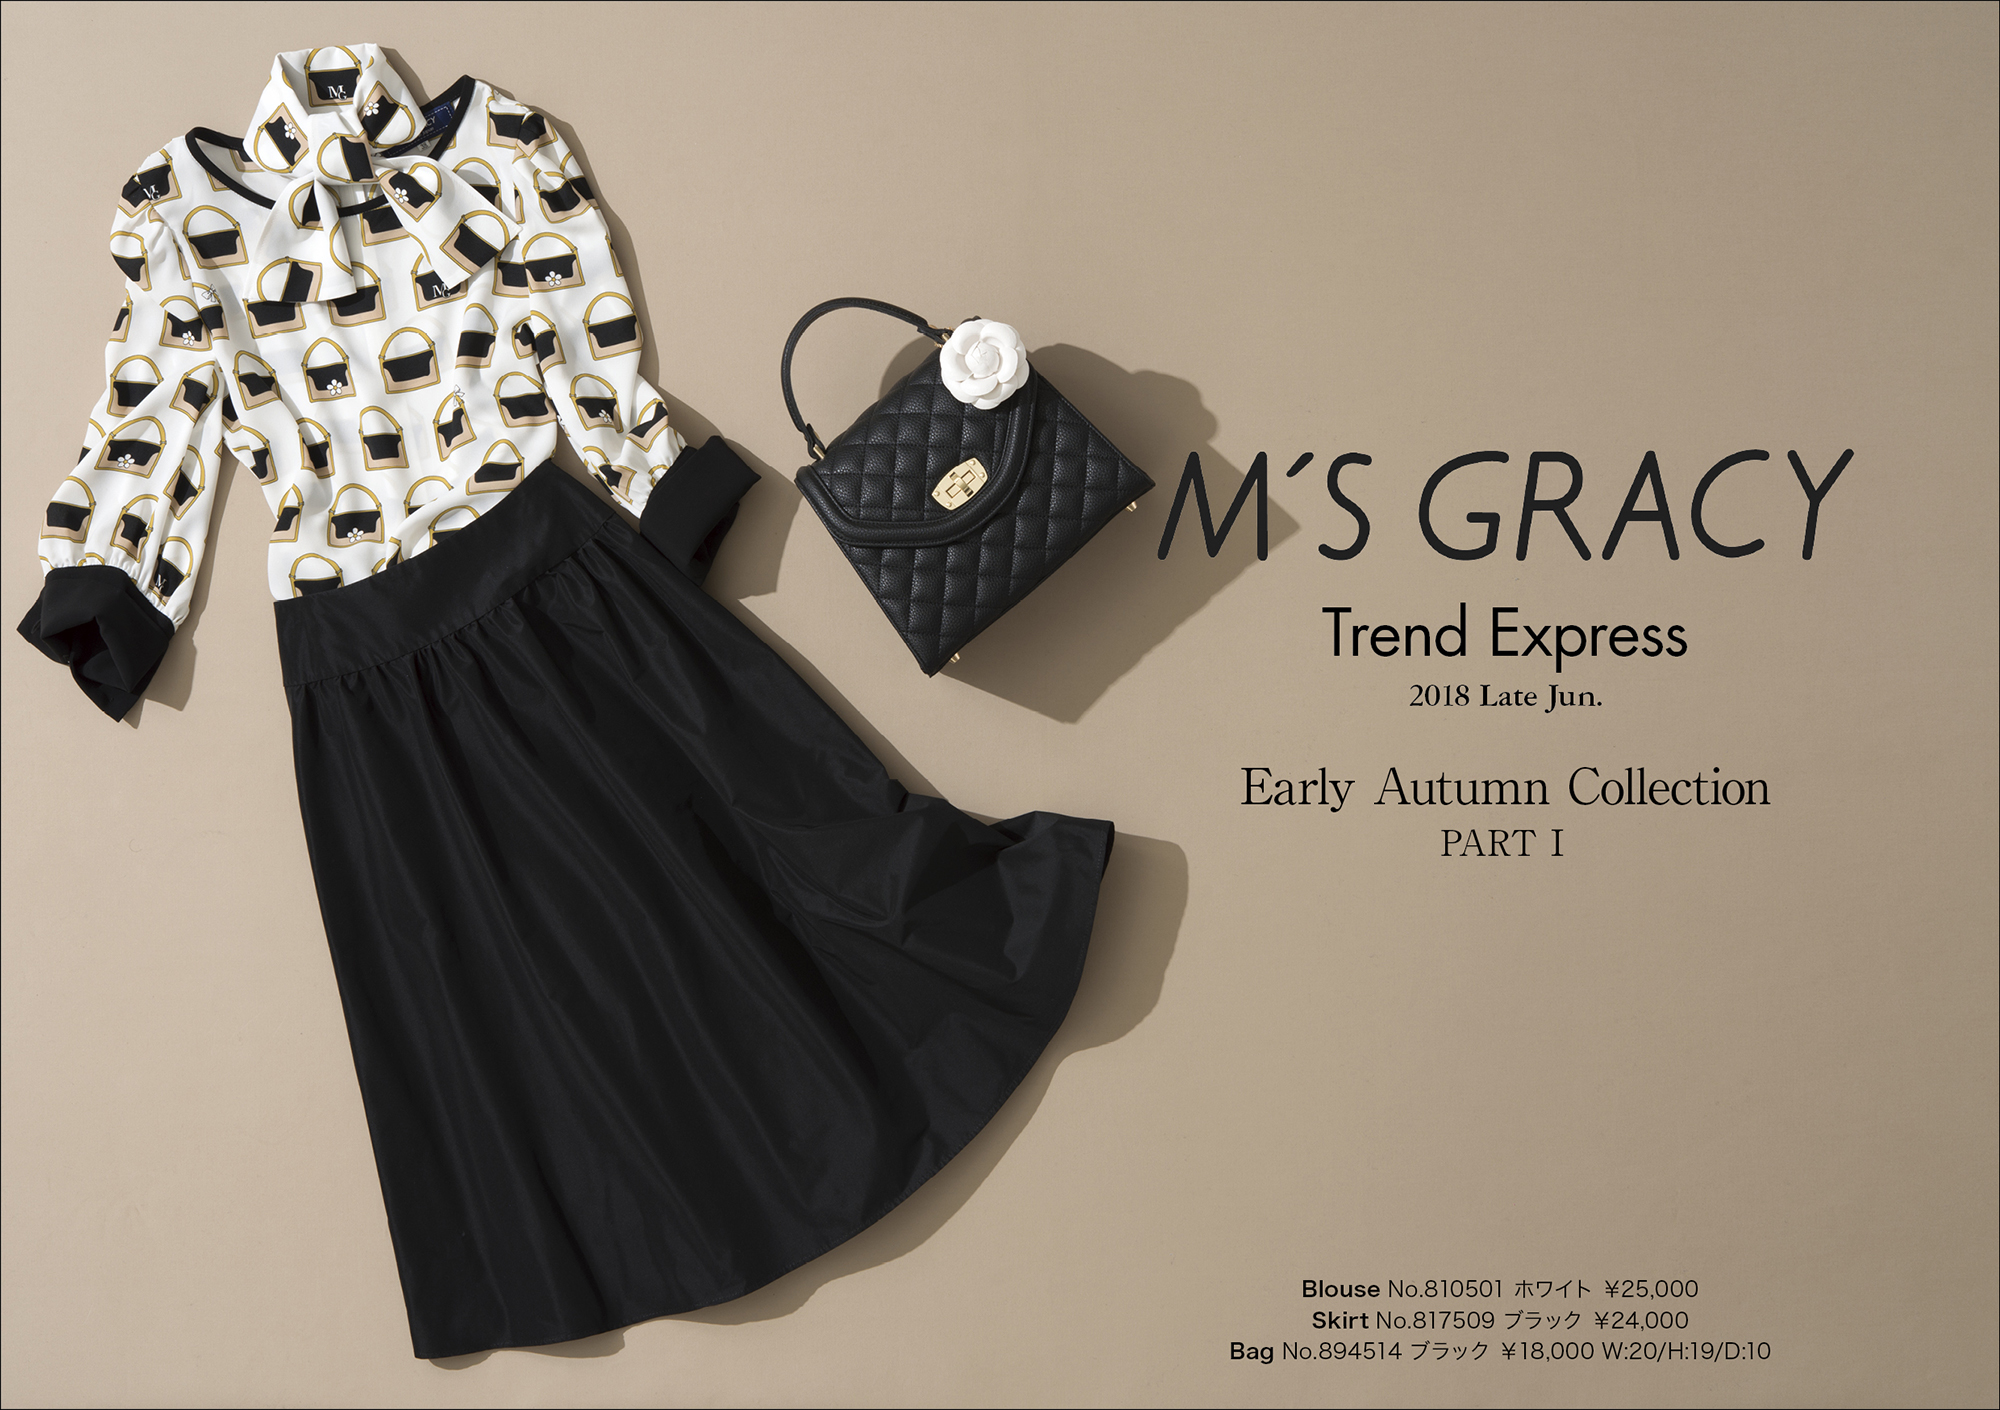 M'S GRACY Trend Express 2018 Late Jun